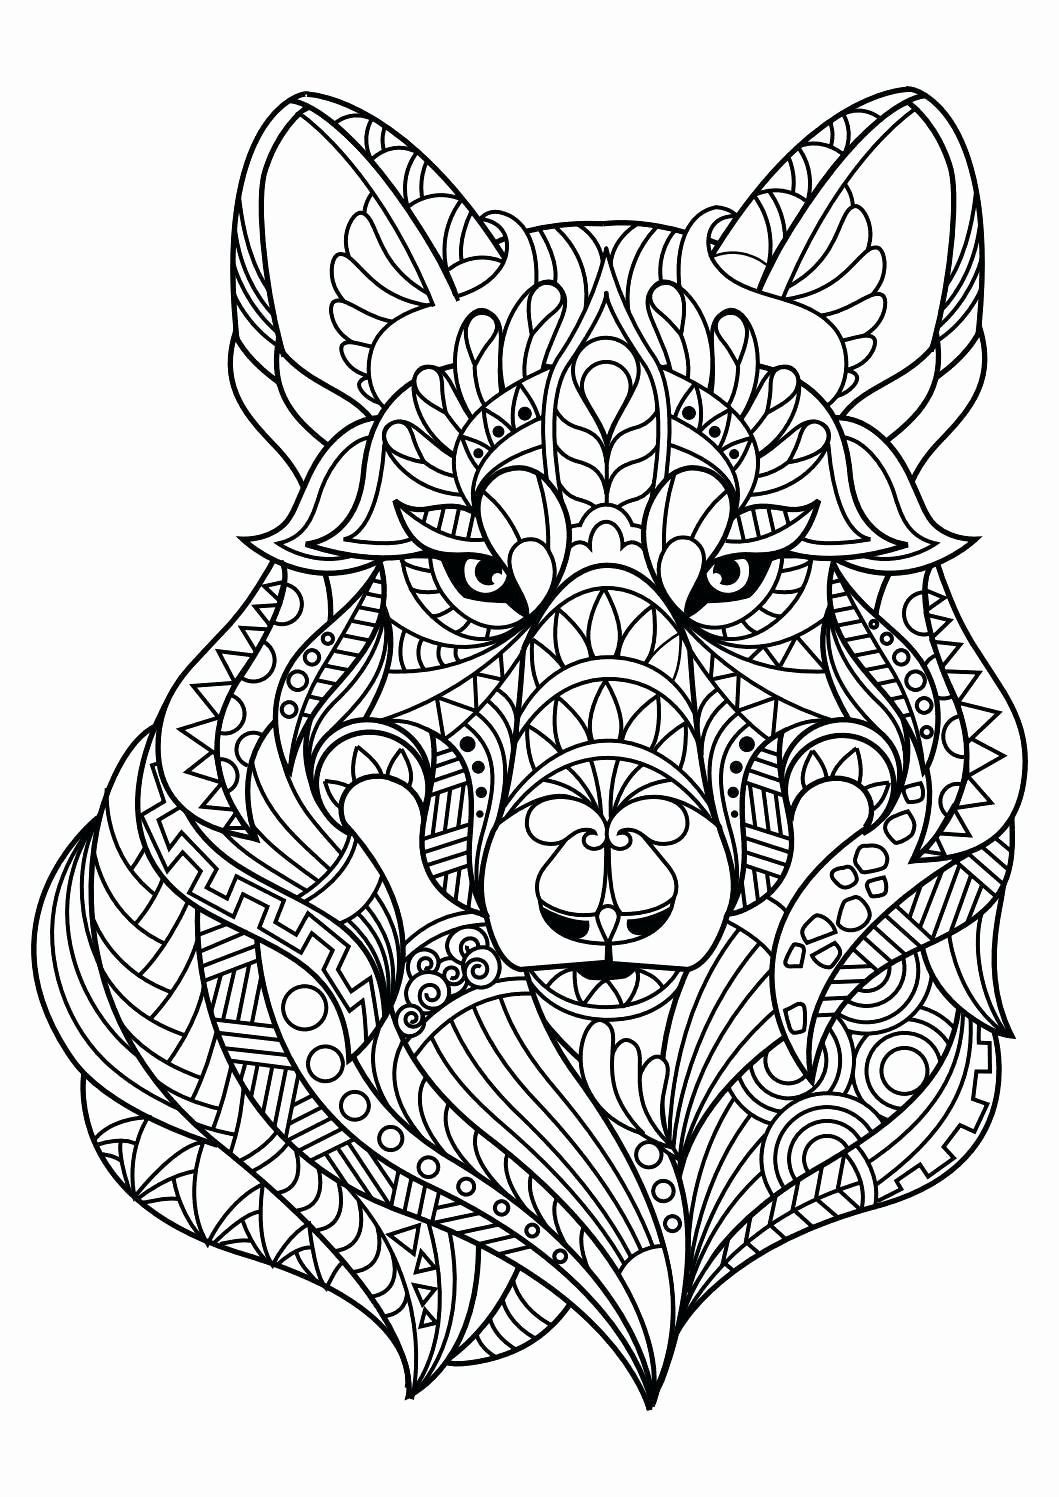 Coloring Pages For Adults Difficult Animals Animal Coloring Books Horse Coloring Pages Dog Coloring Page